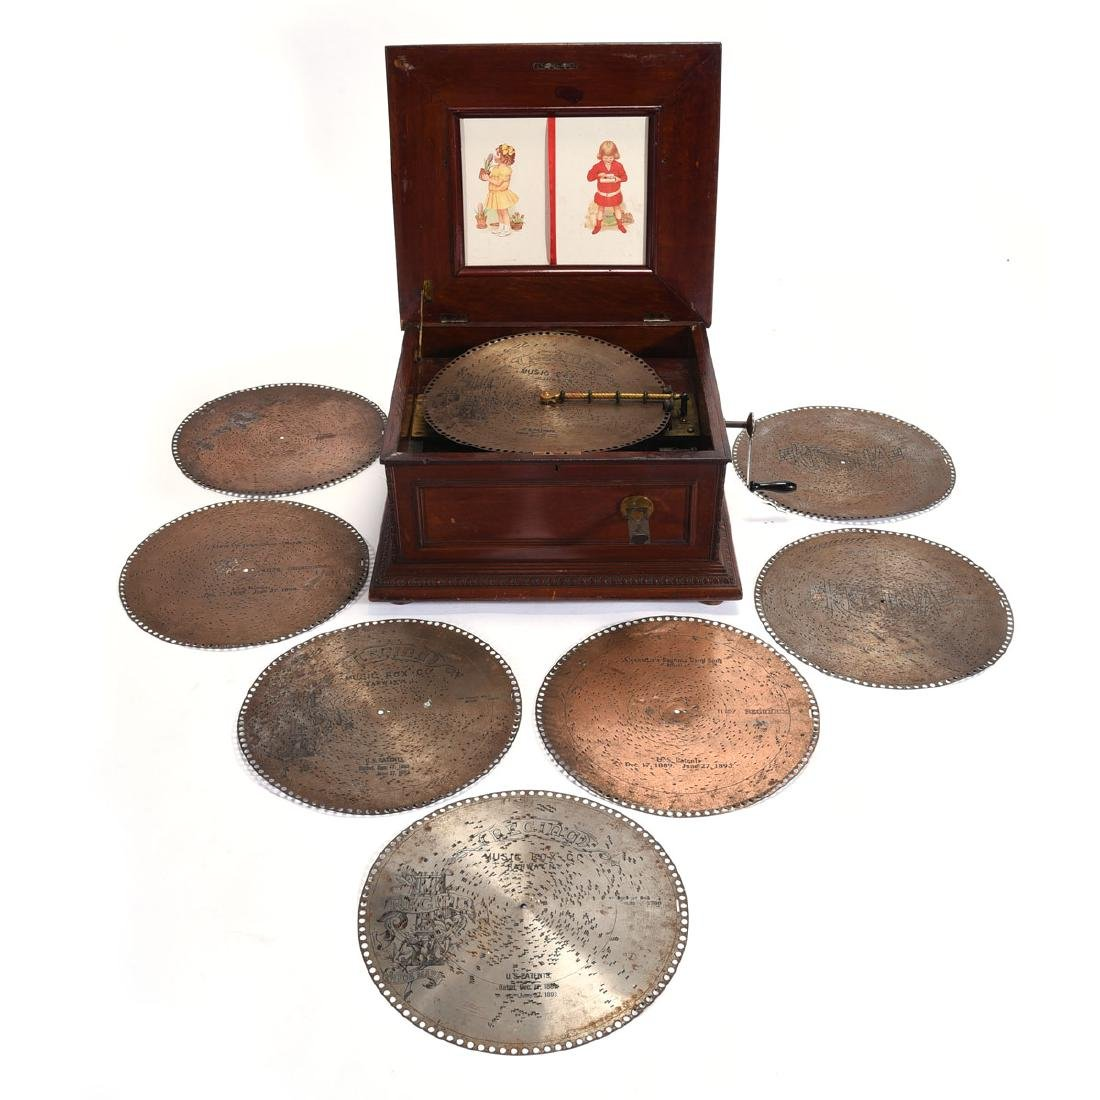 Regina Music Box with 8 Discs